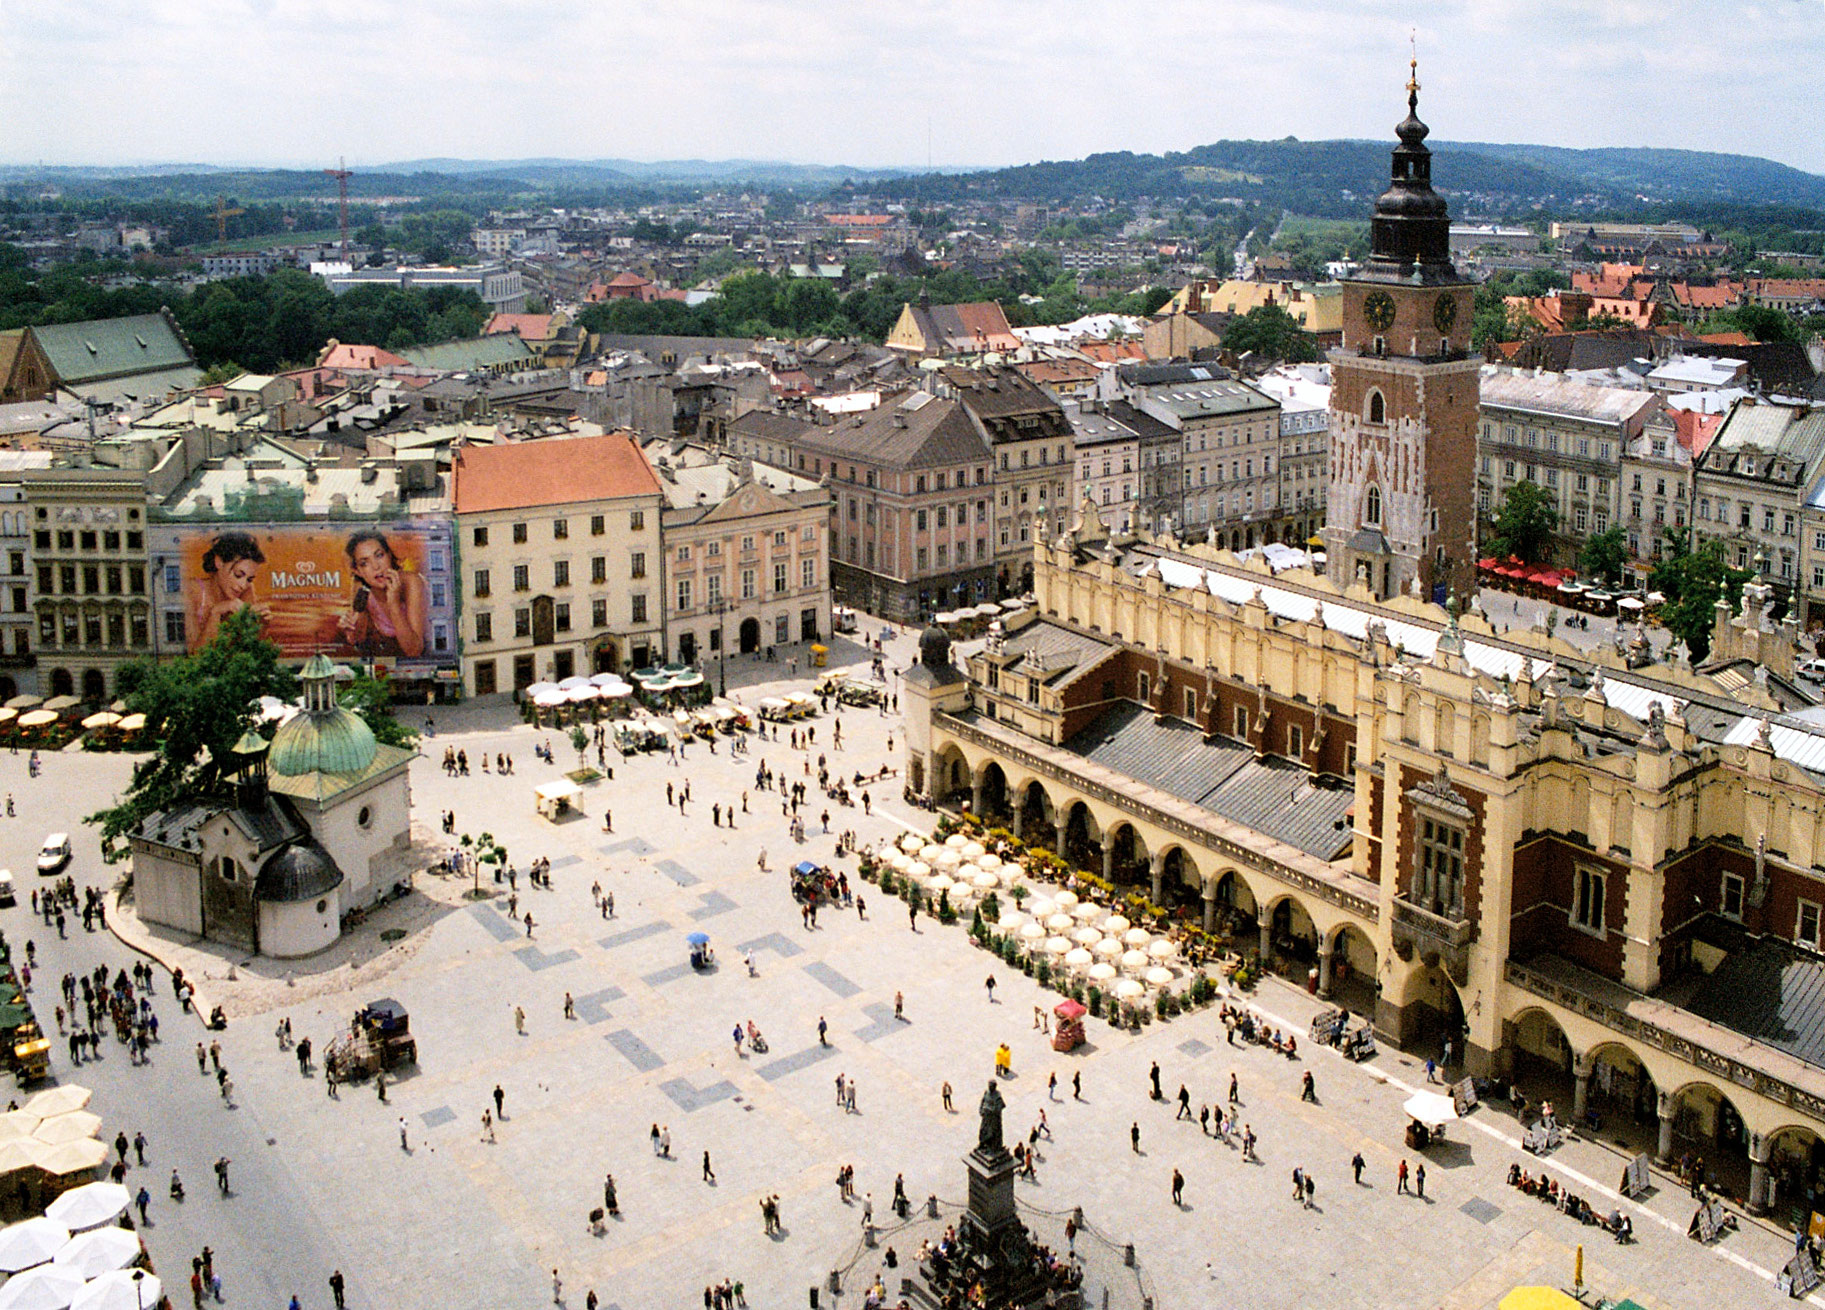 http://upload.wikimedia.org/wikipedia/commons/a/a5/Krakow_rynek_01.jpg